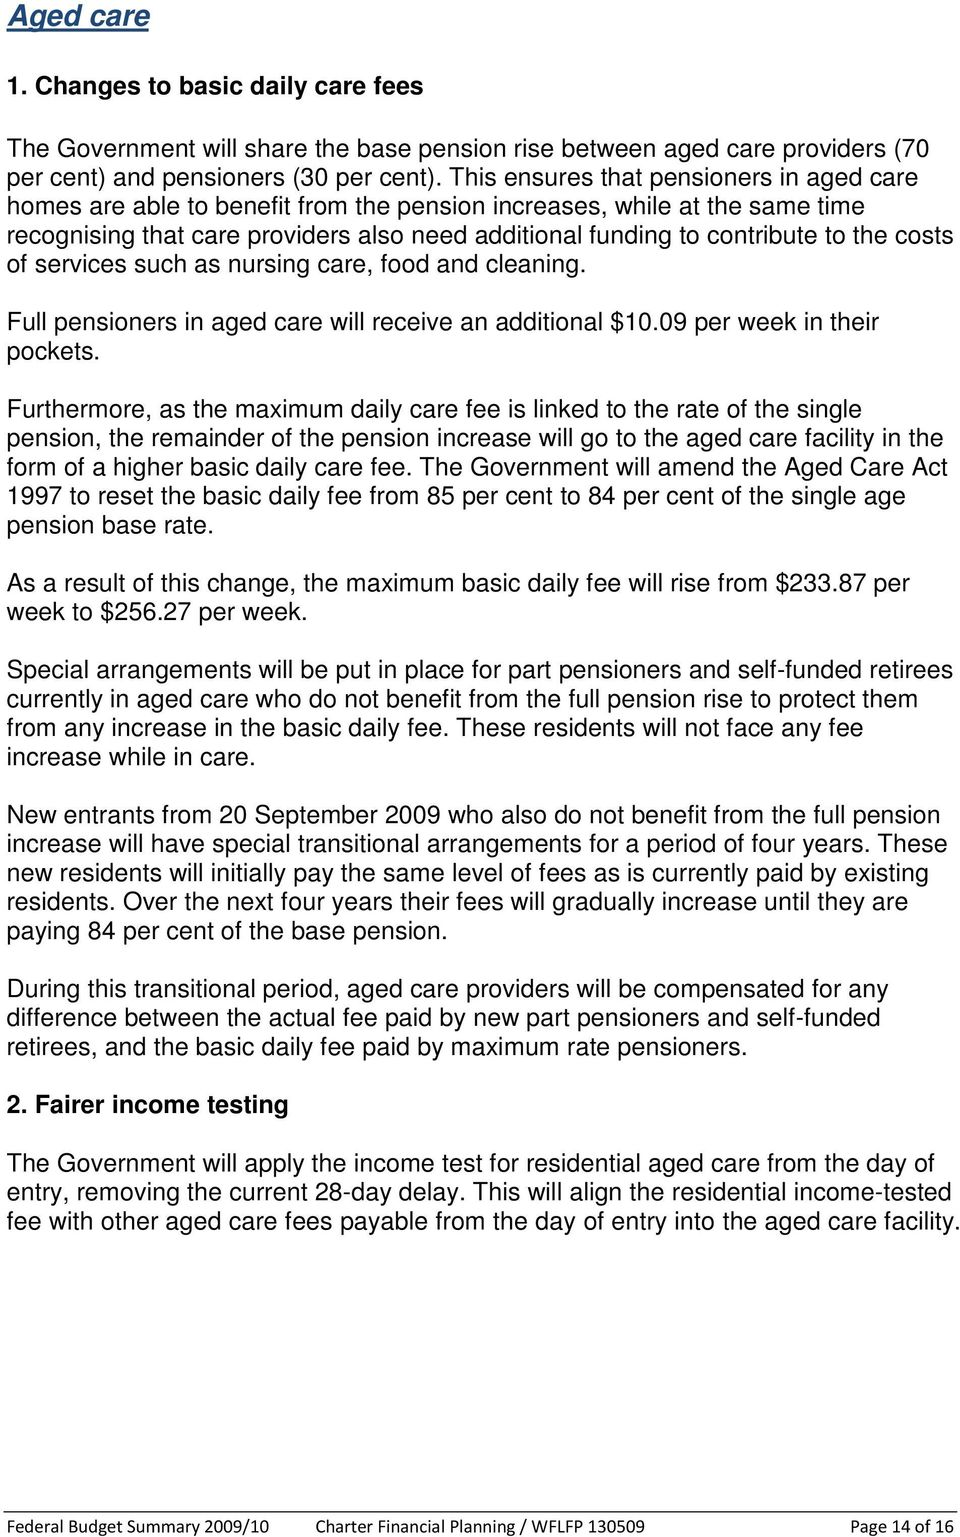 the costs of services such as nursing care, food and cleaning. Full pensioners in aged care will receive an additional $10.09 per week in their pockets.